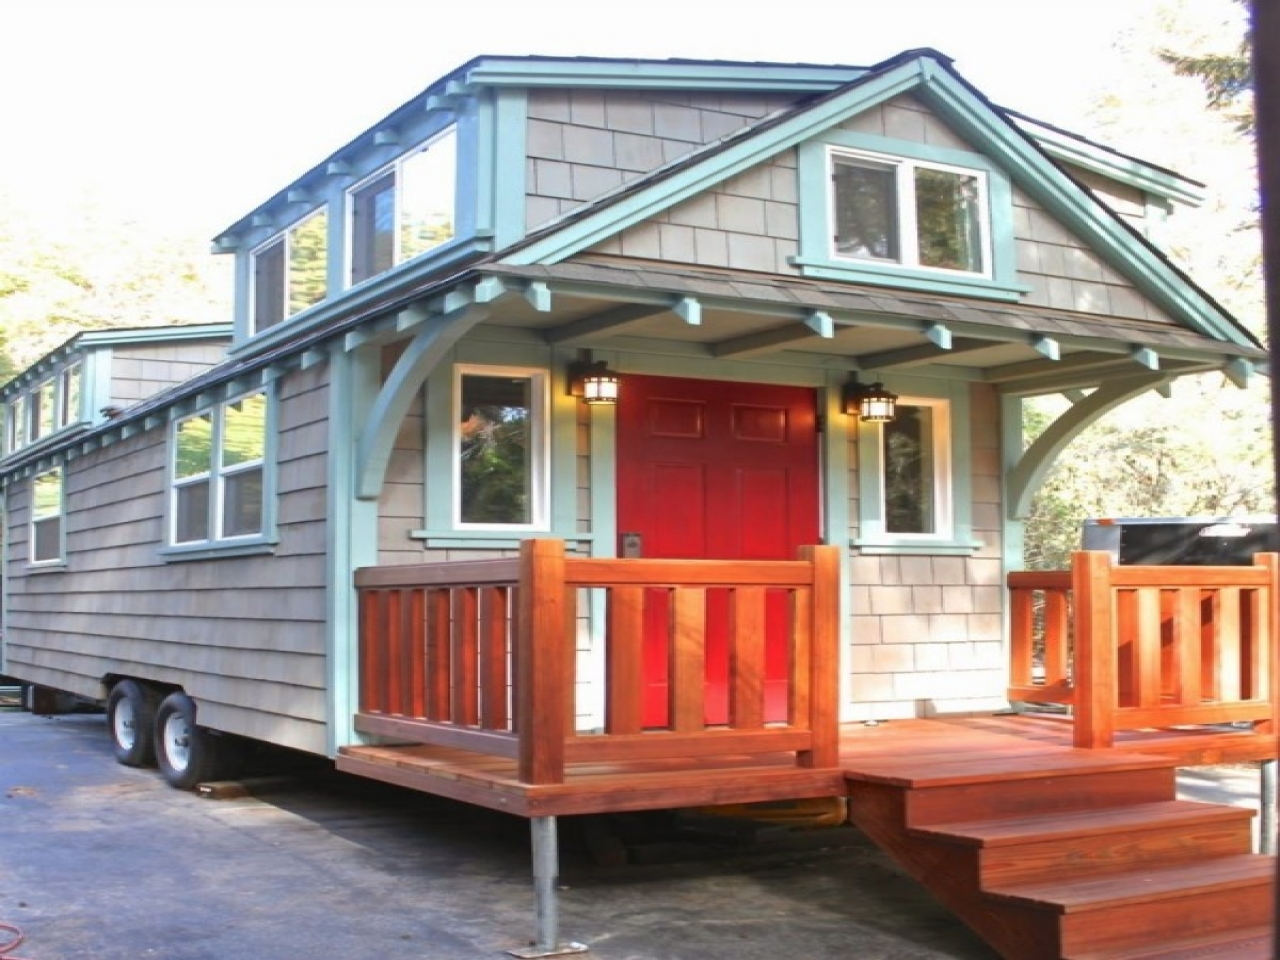 Tiny Home Designs Plans: Tiny House On Wheels Craftsman Tiny Houses On Wheels